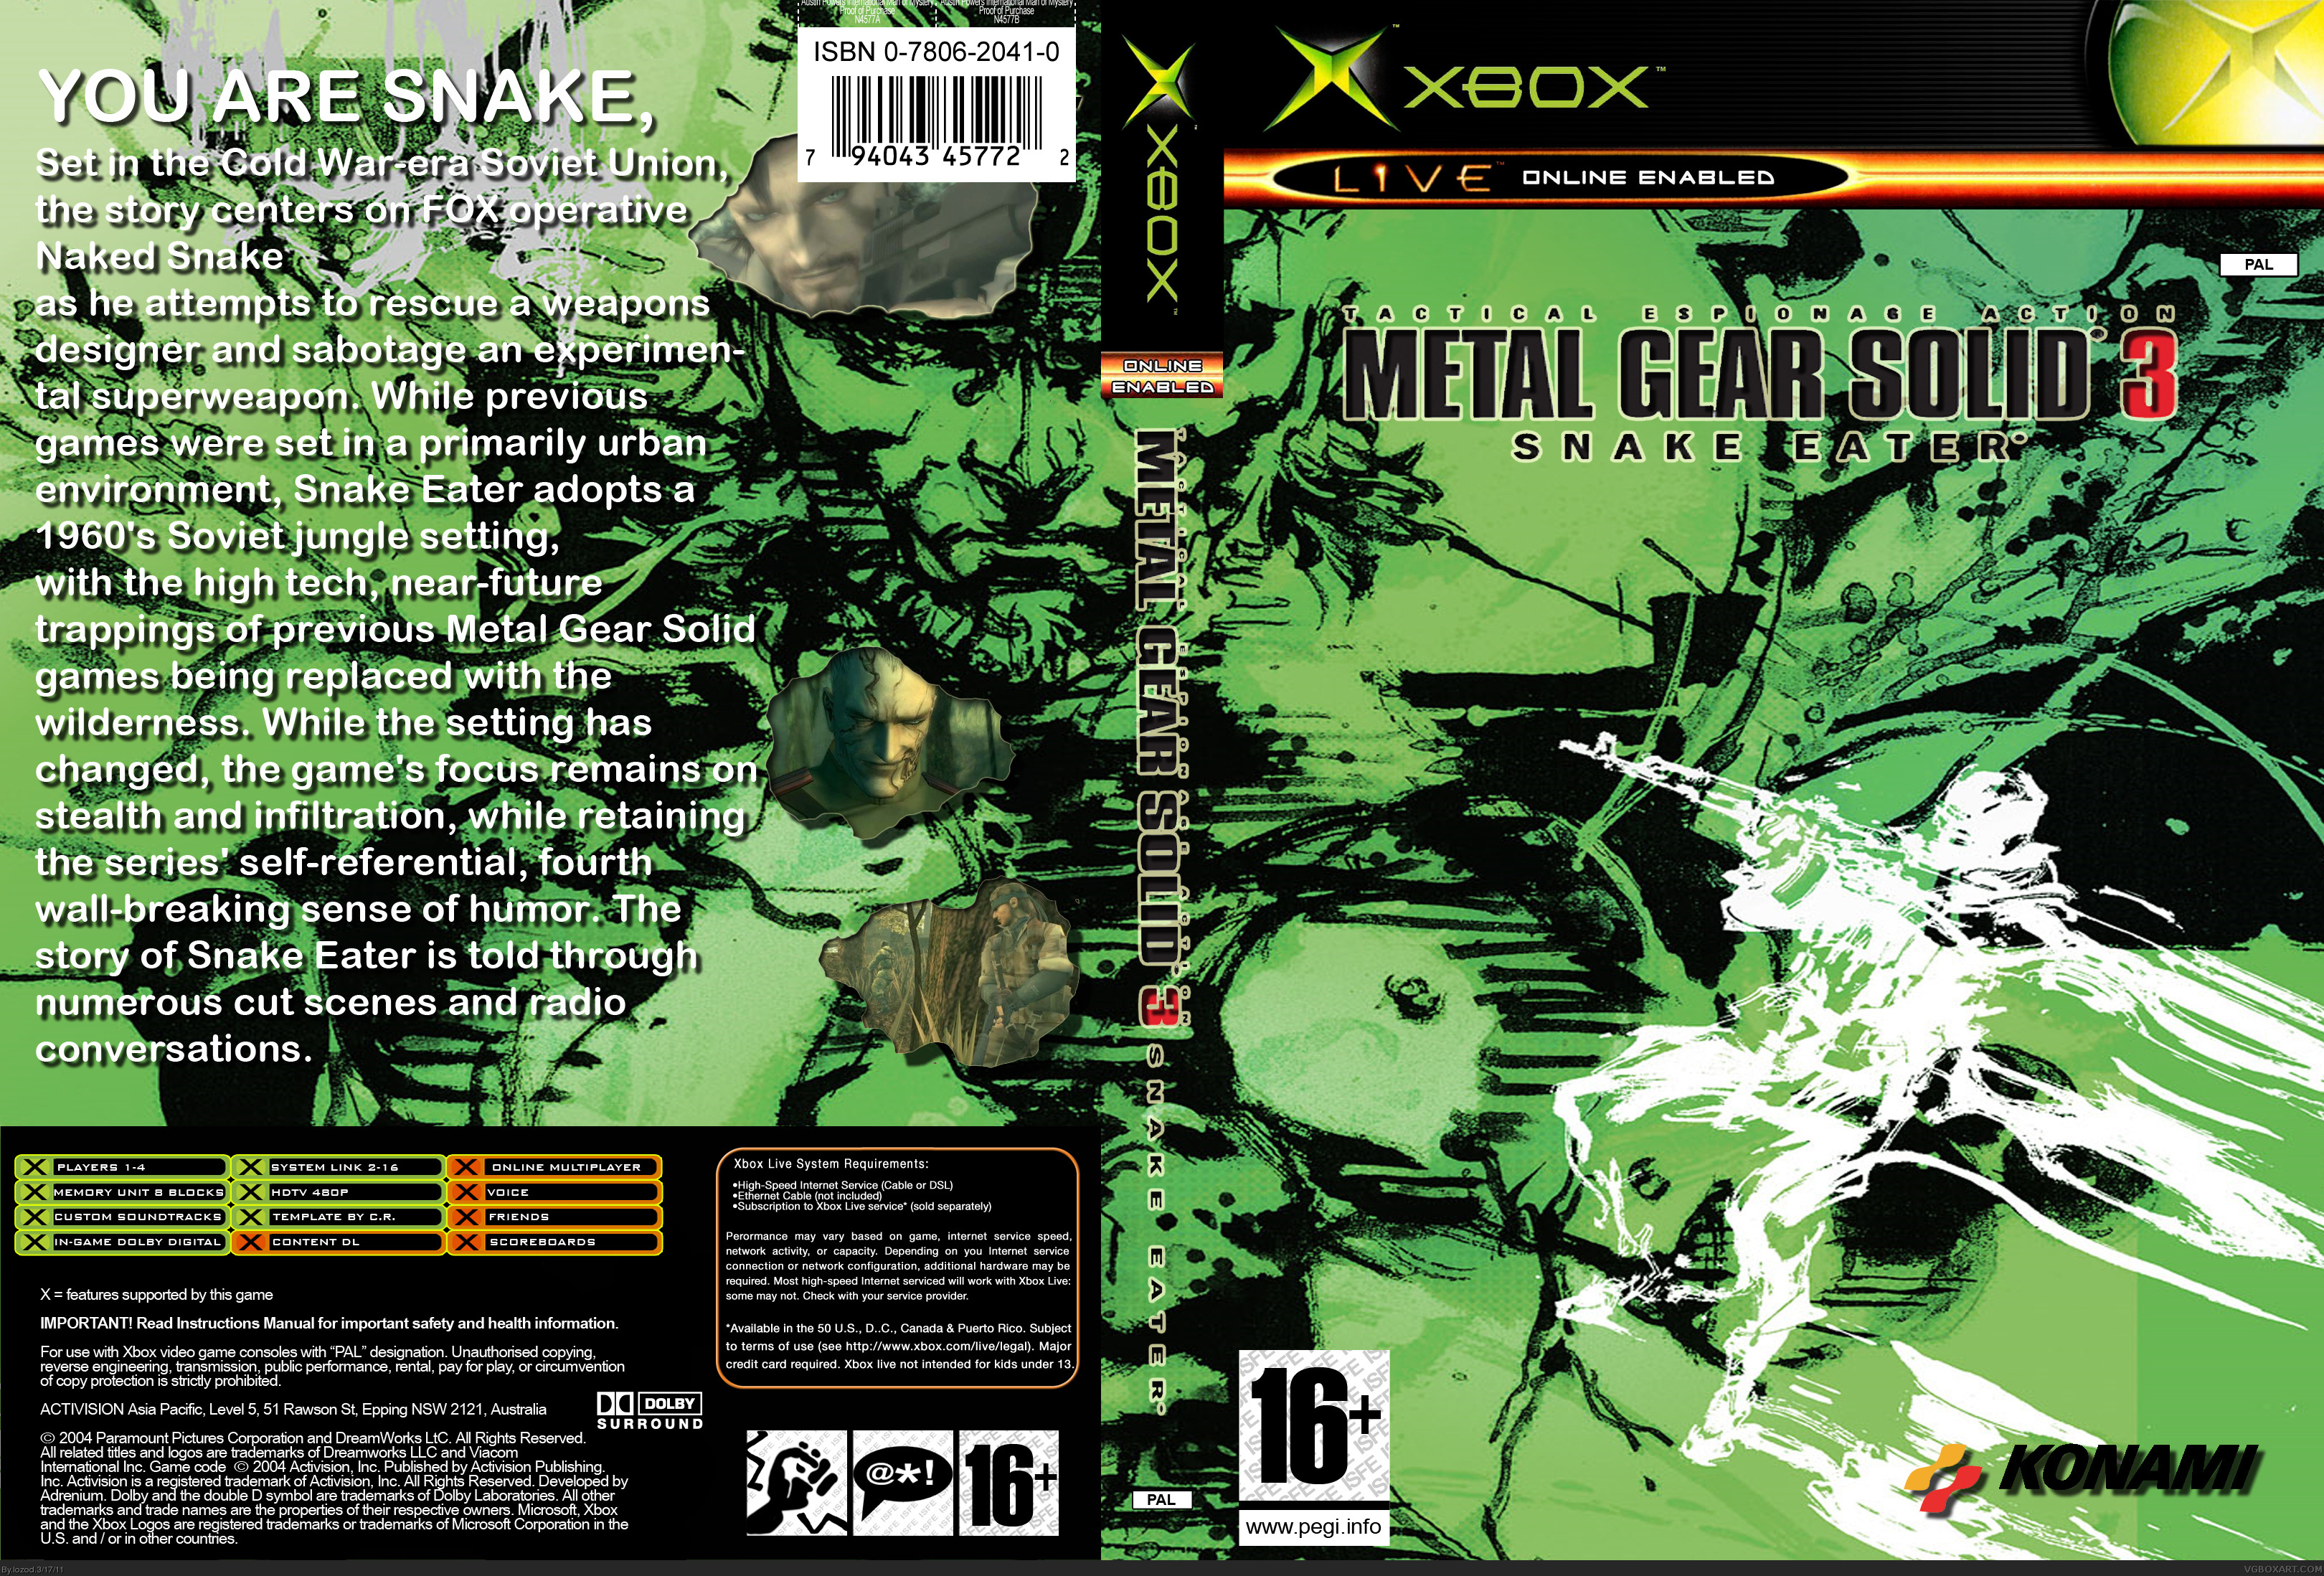 Metal gear solid 4 pc download torrent 21 podcast.